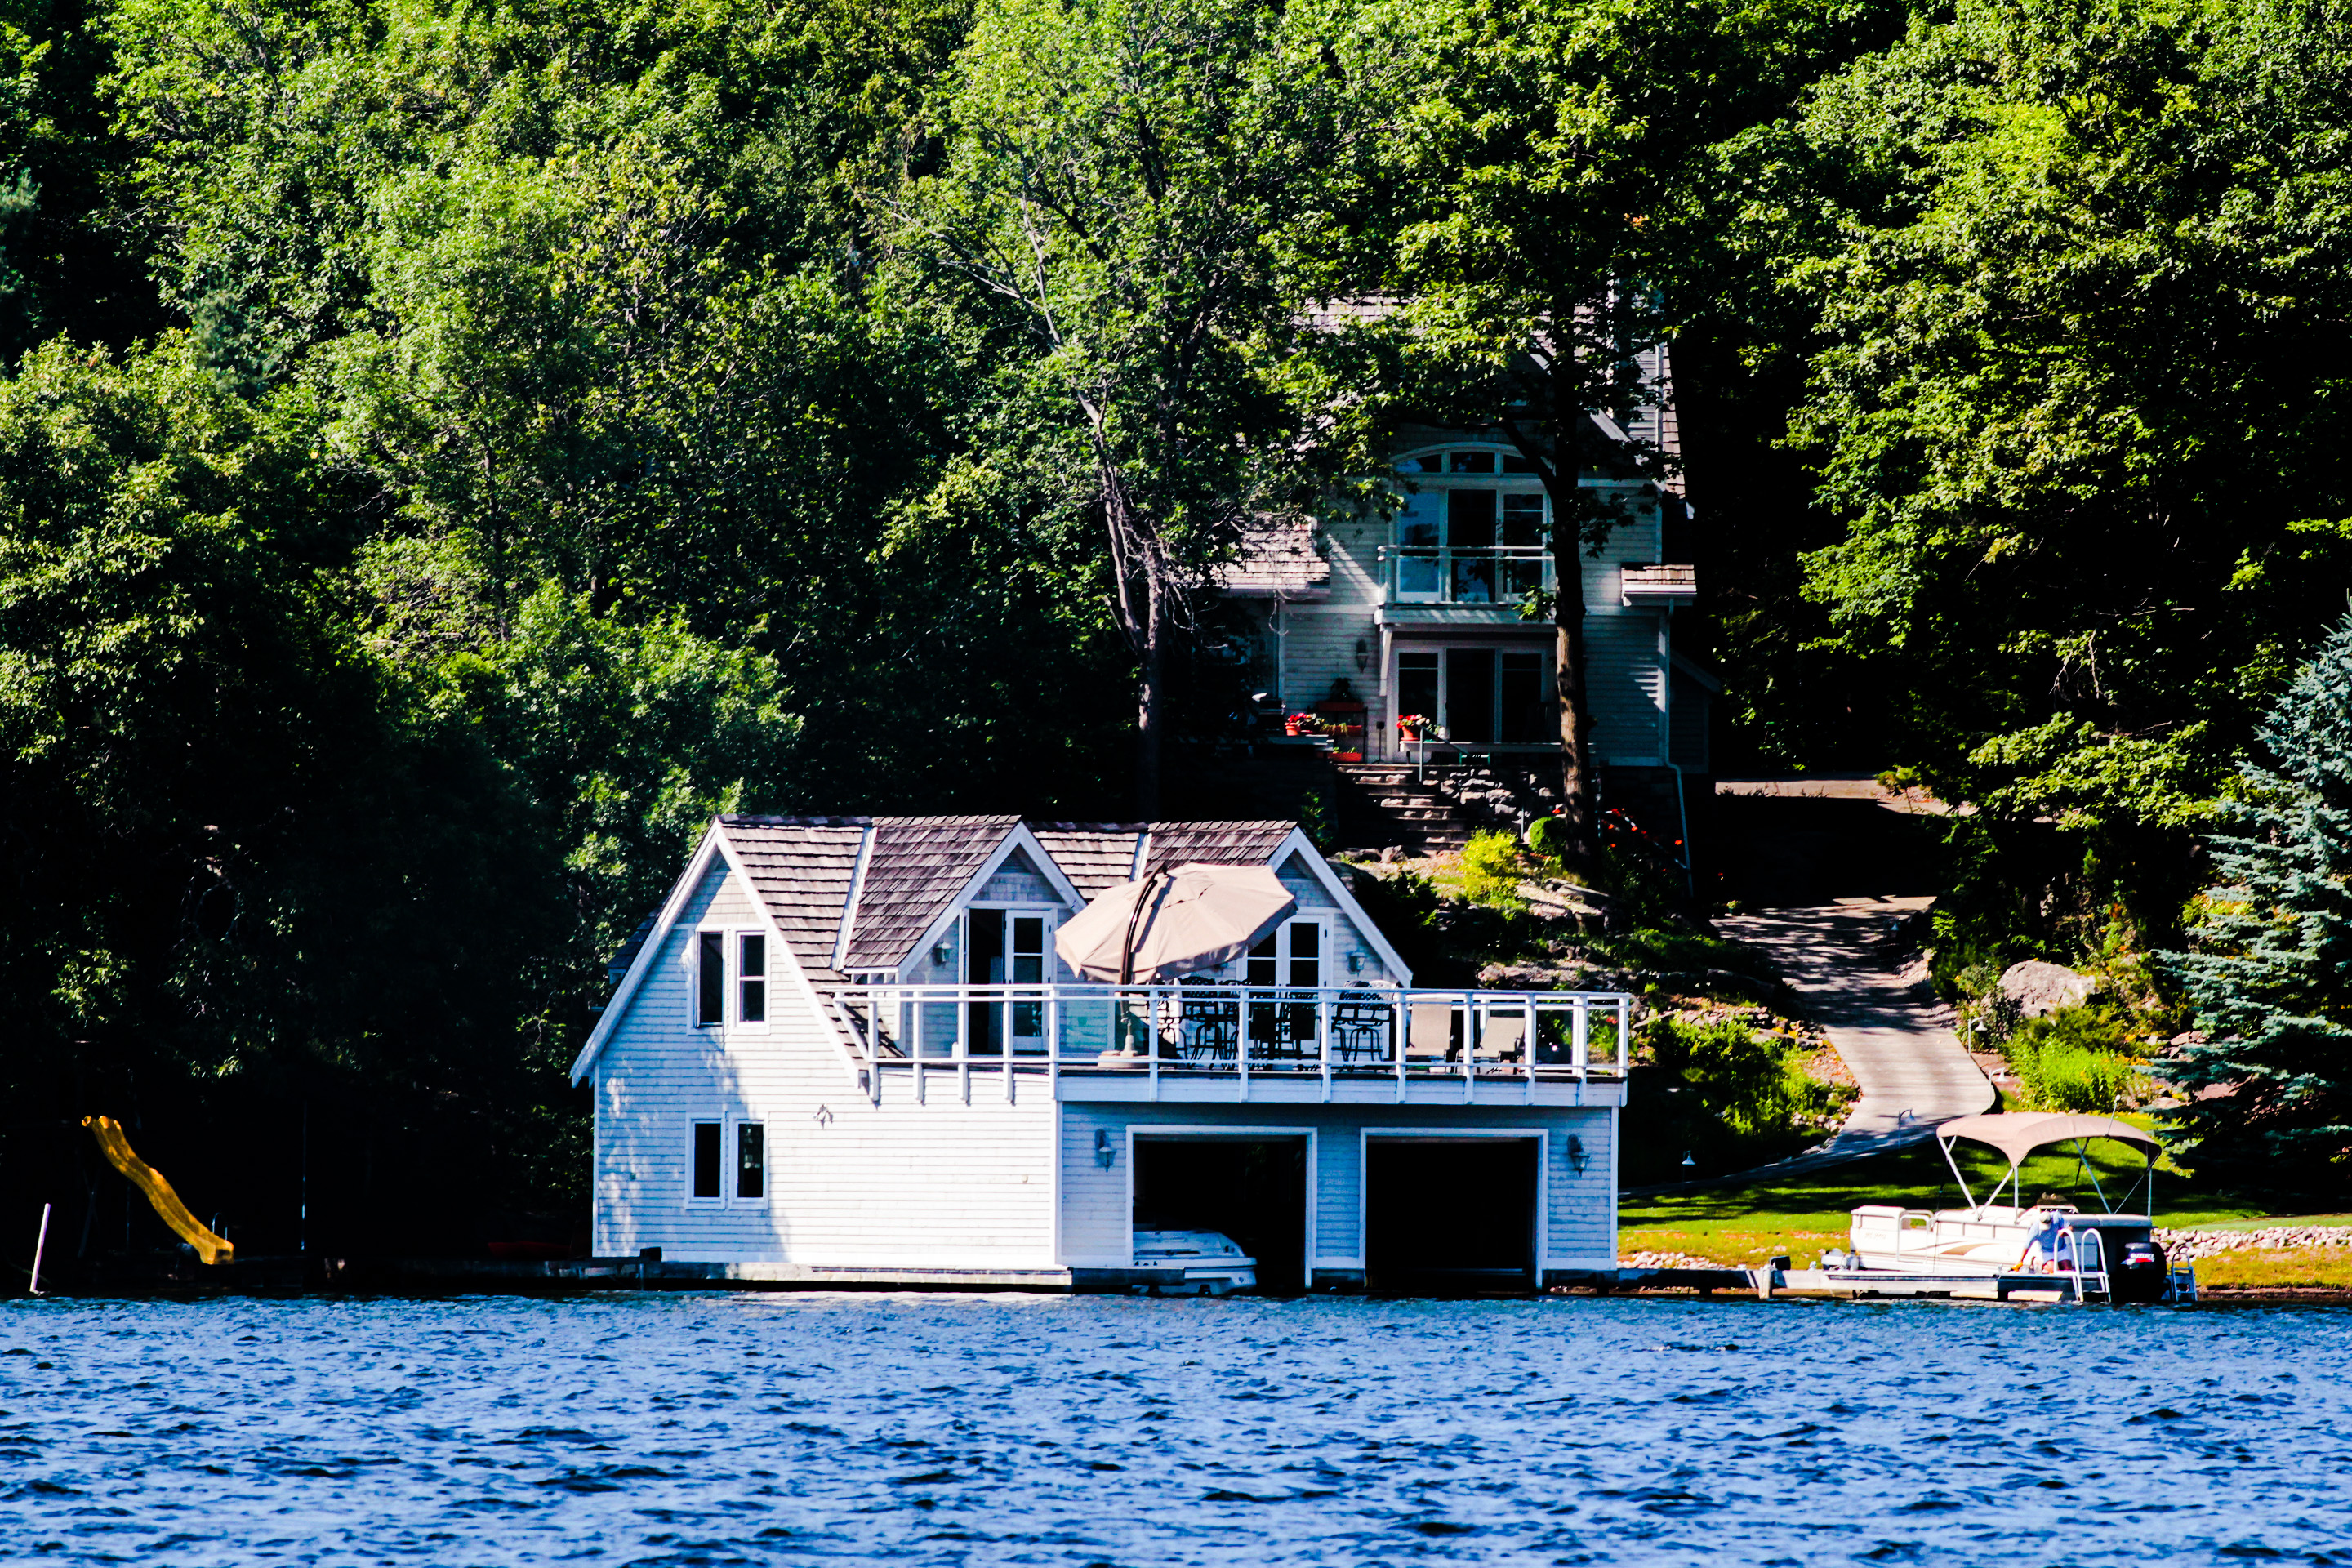 Insuring your home away from home